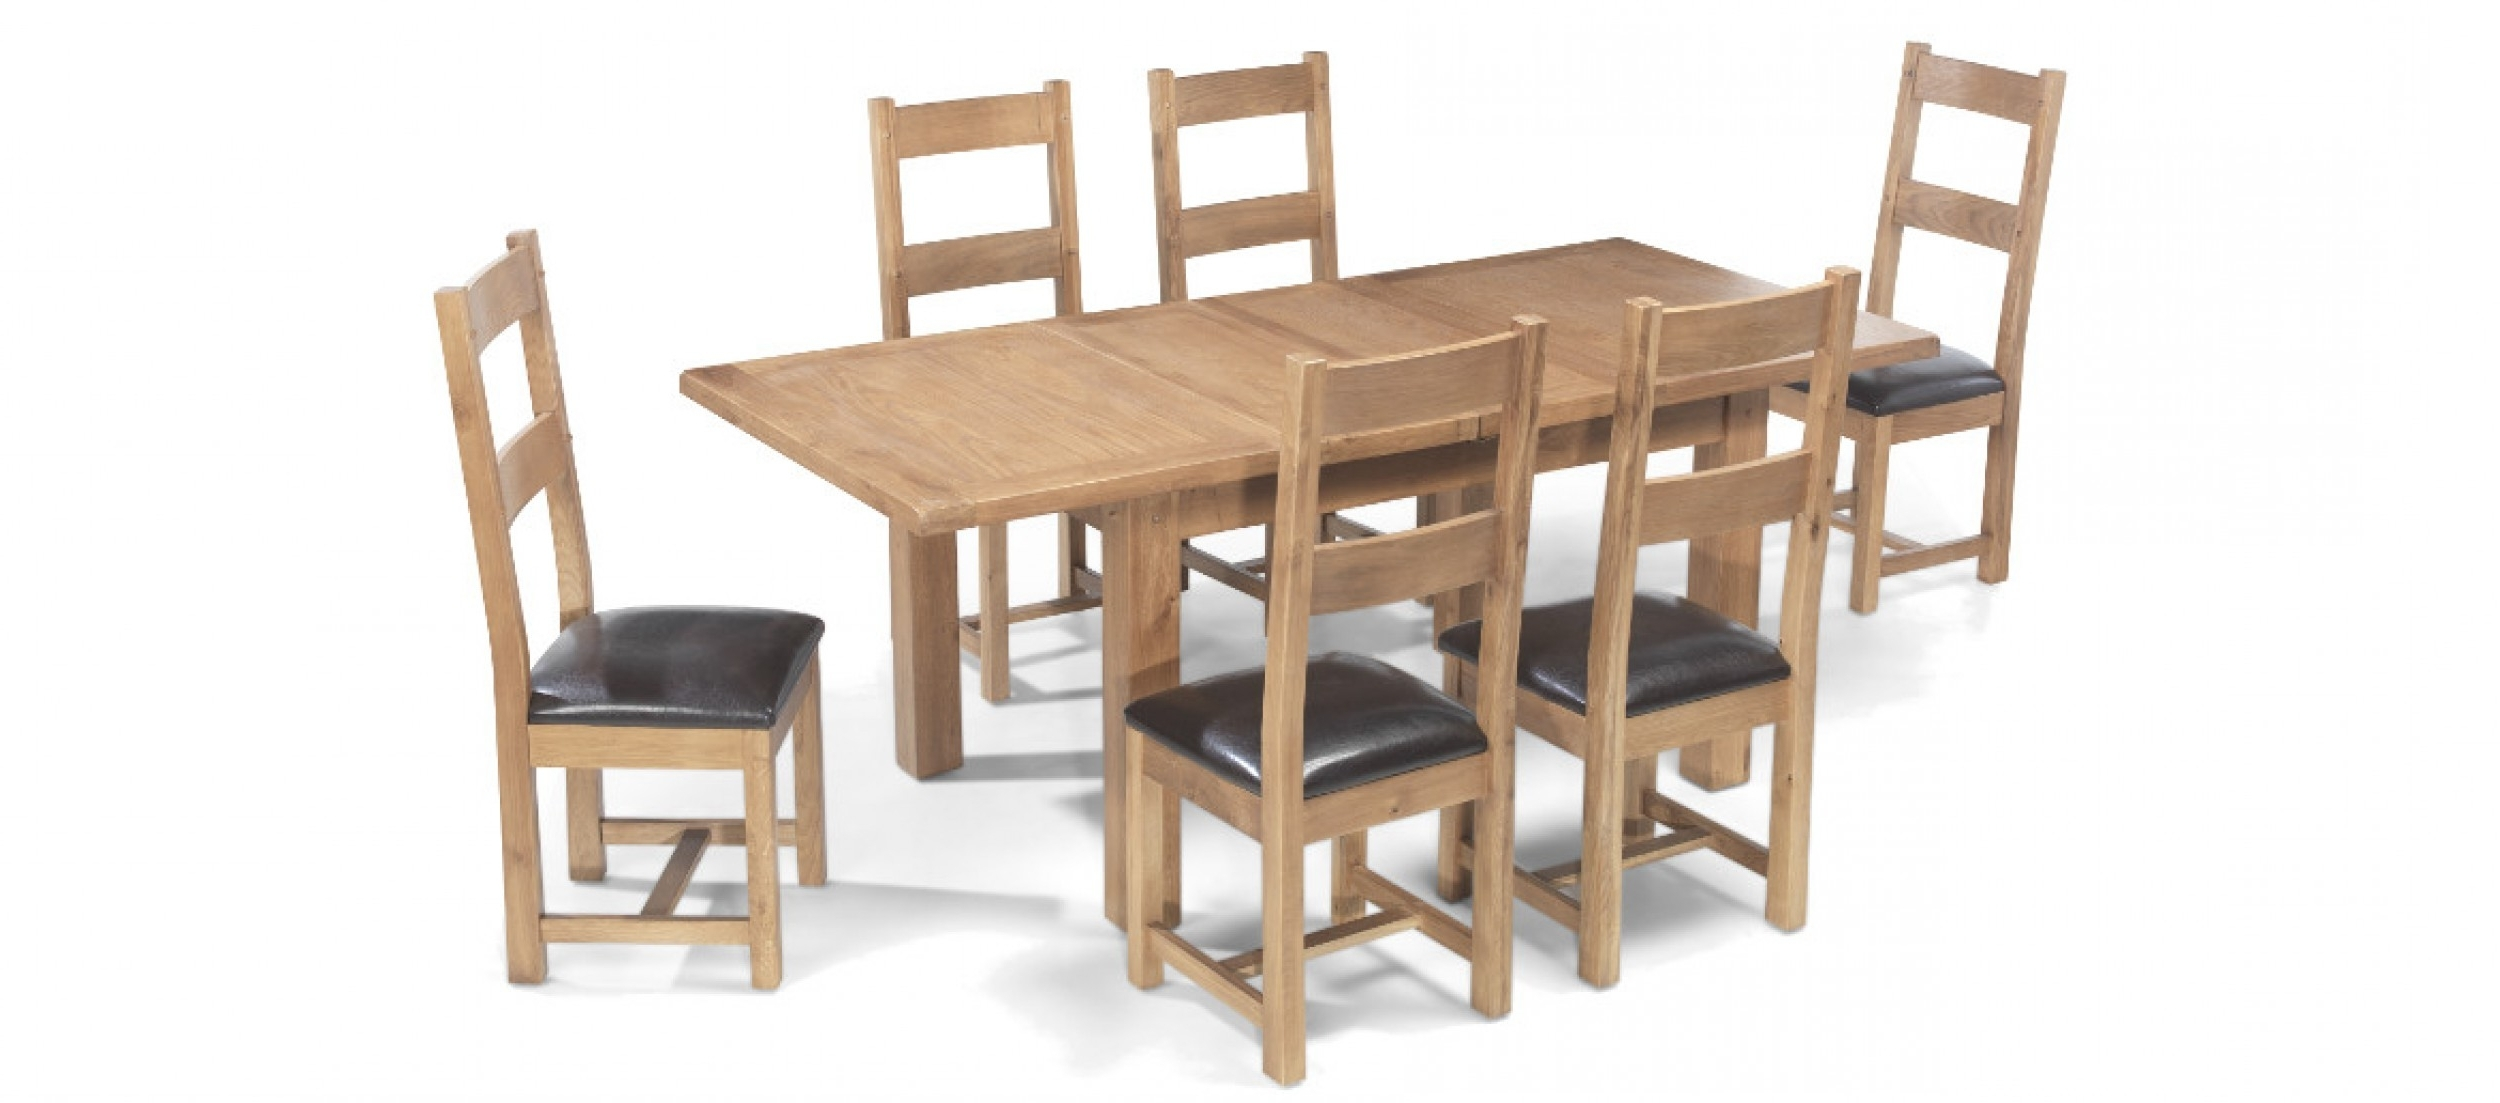 Most Recent Extending Dining Tables With 6 Chairs Intended For Rustic Oak 132 198 Cm Extending Dining Table And 6 Chairs (View 15 of 25)